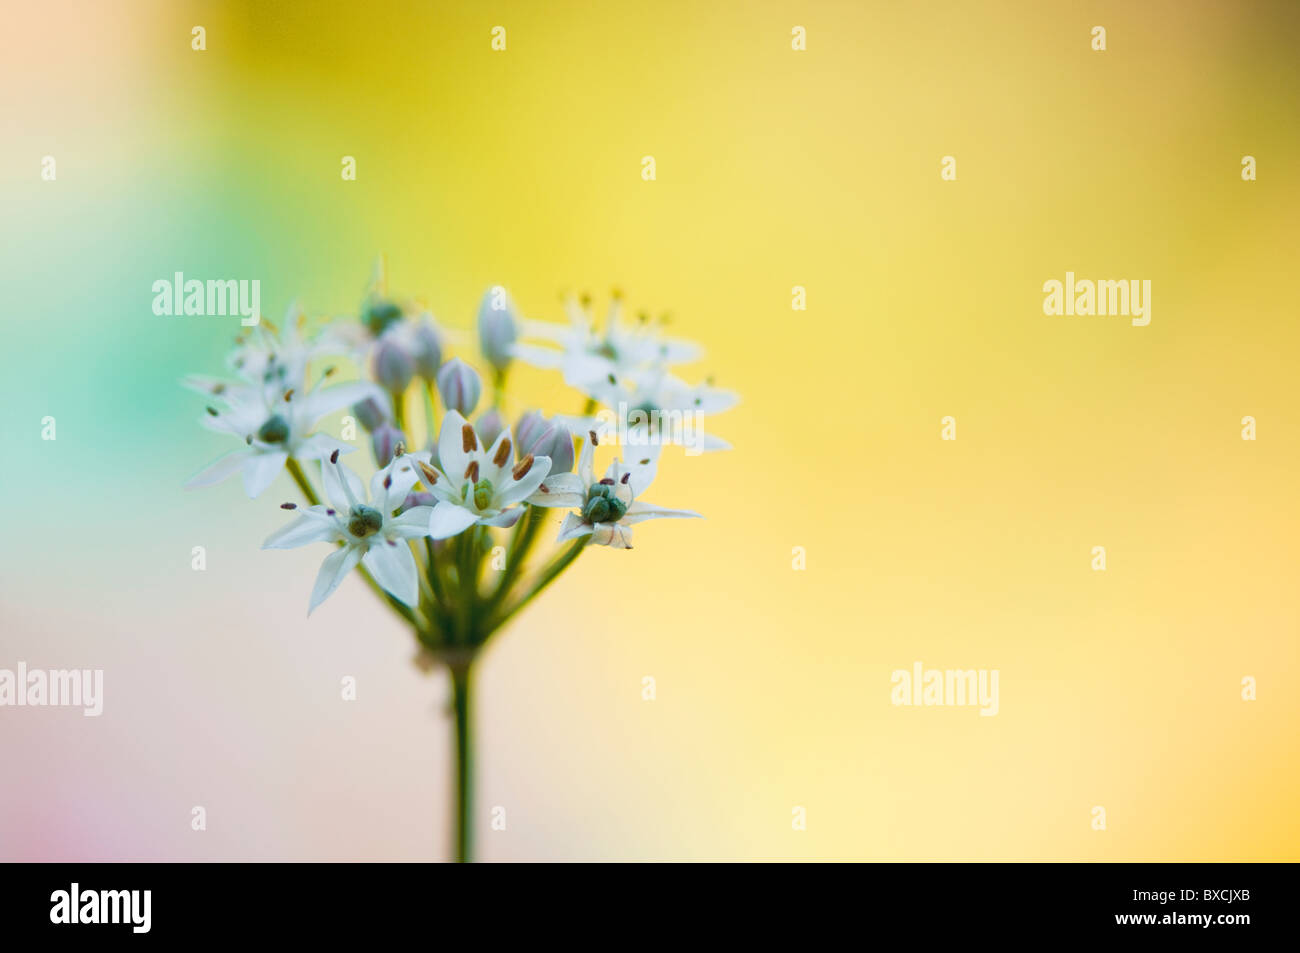 Allium ursinum - White Wild Garlic flowers - Stock Image